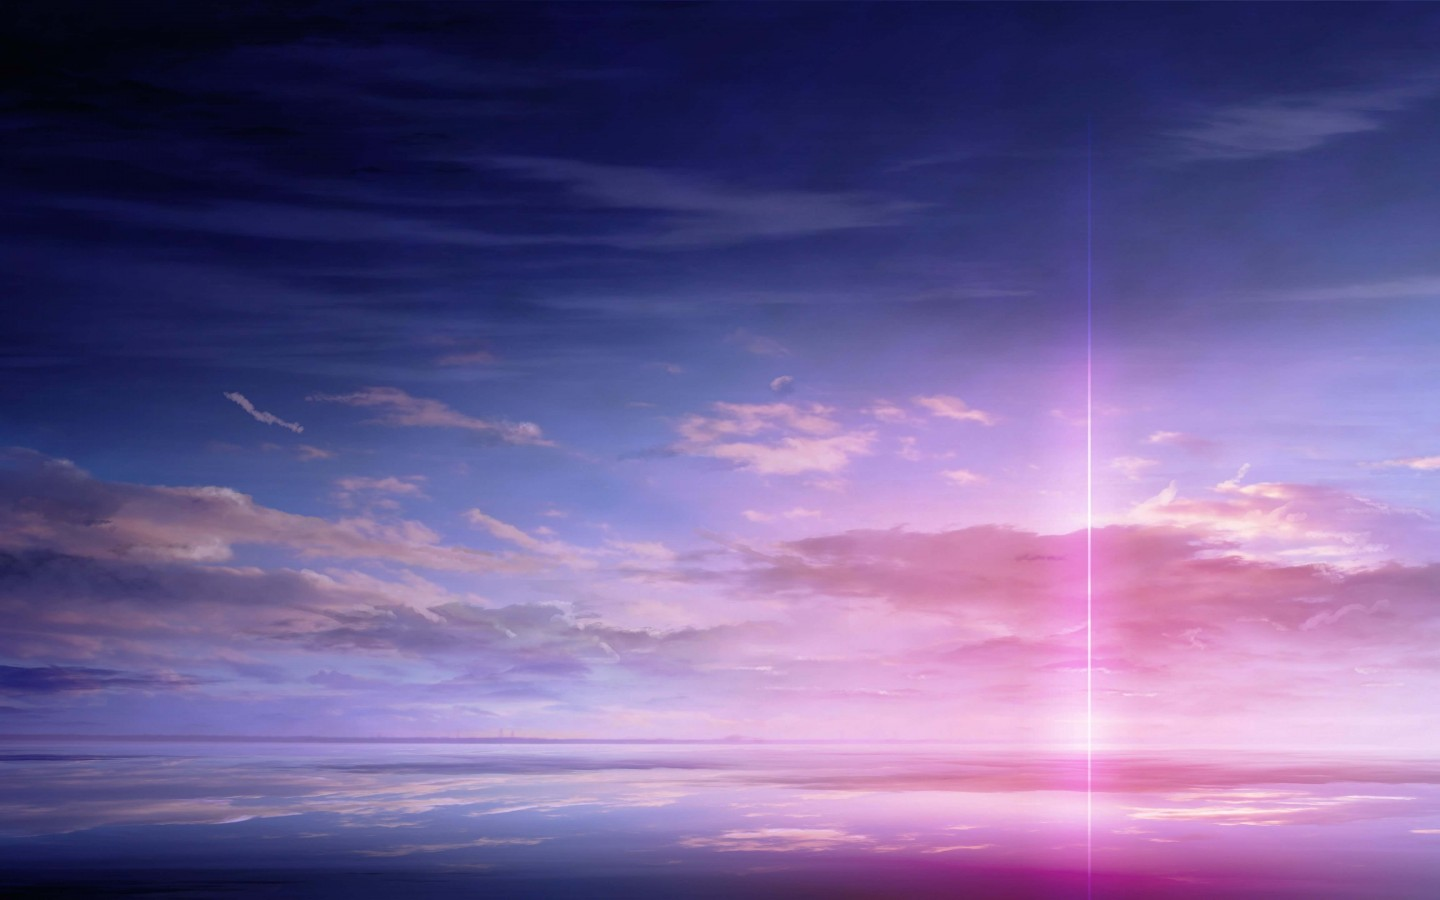 Purple Solar Pillar HD wallpaper for 1440 x 900   HDwallpapersnet 1440x900